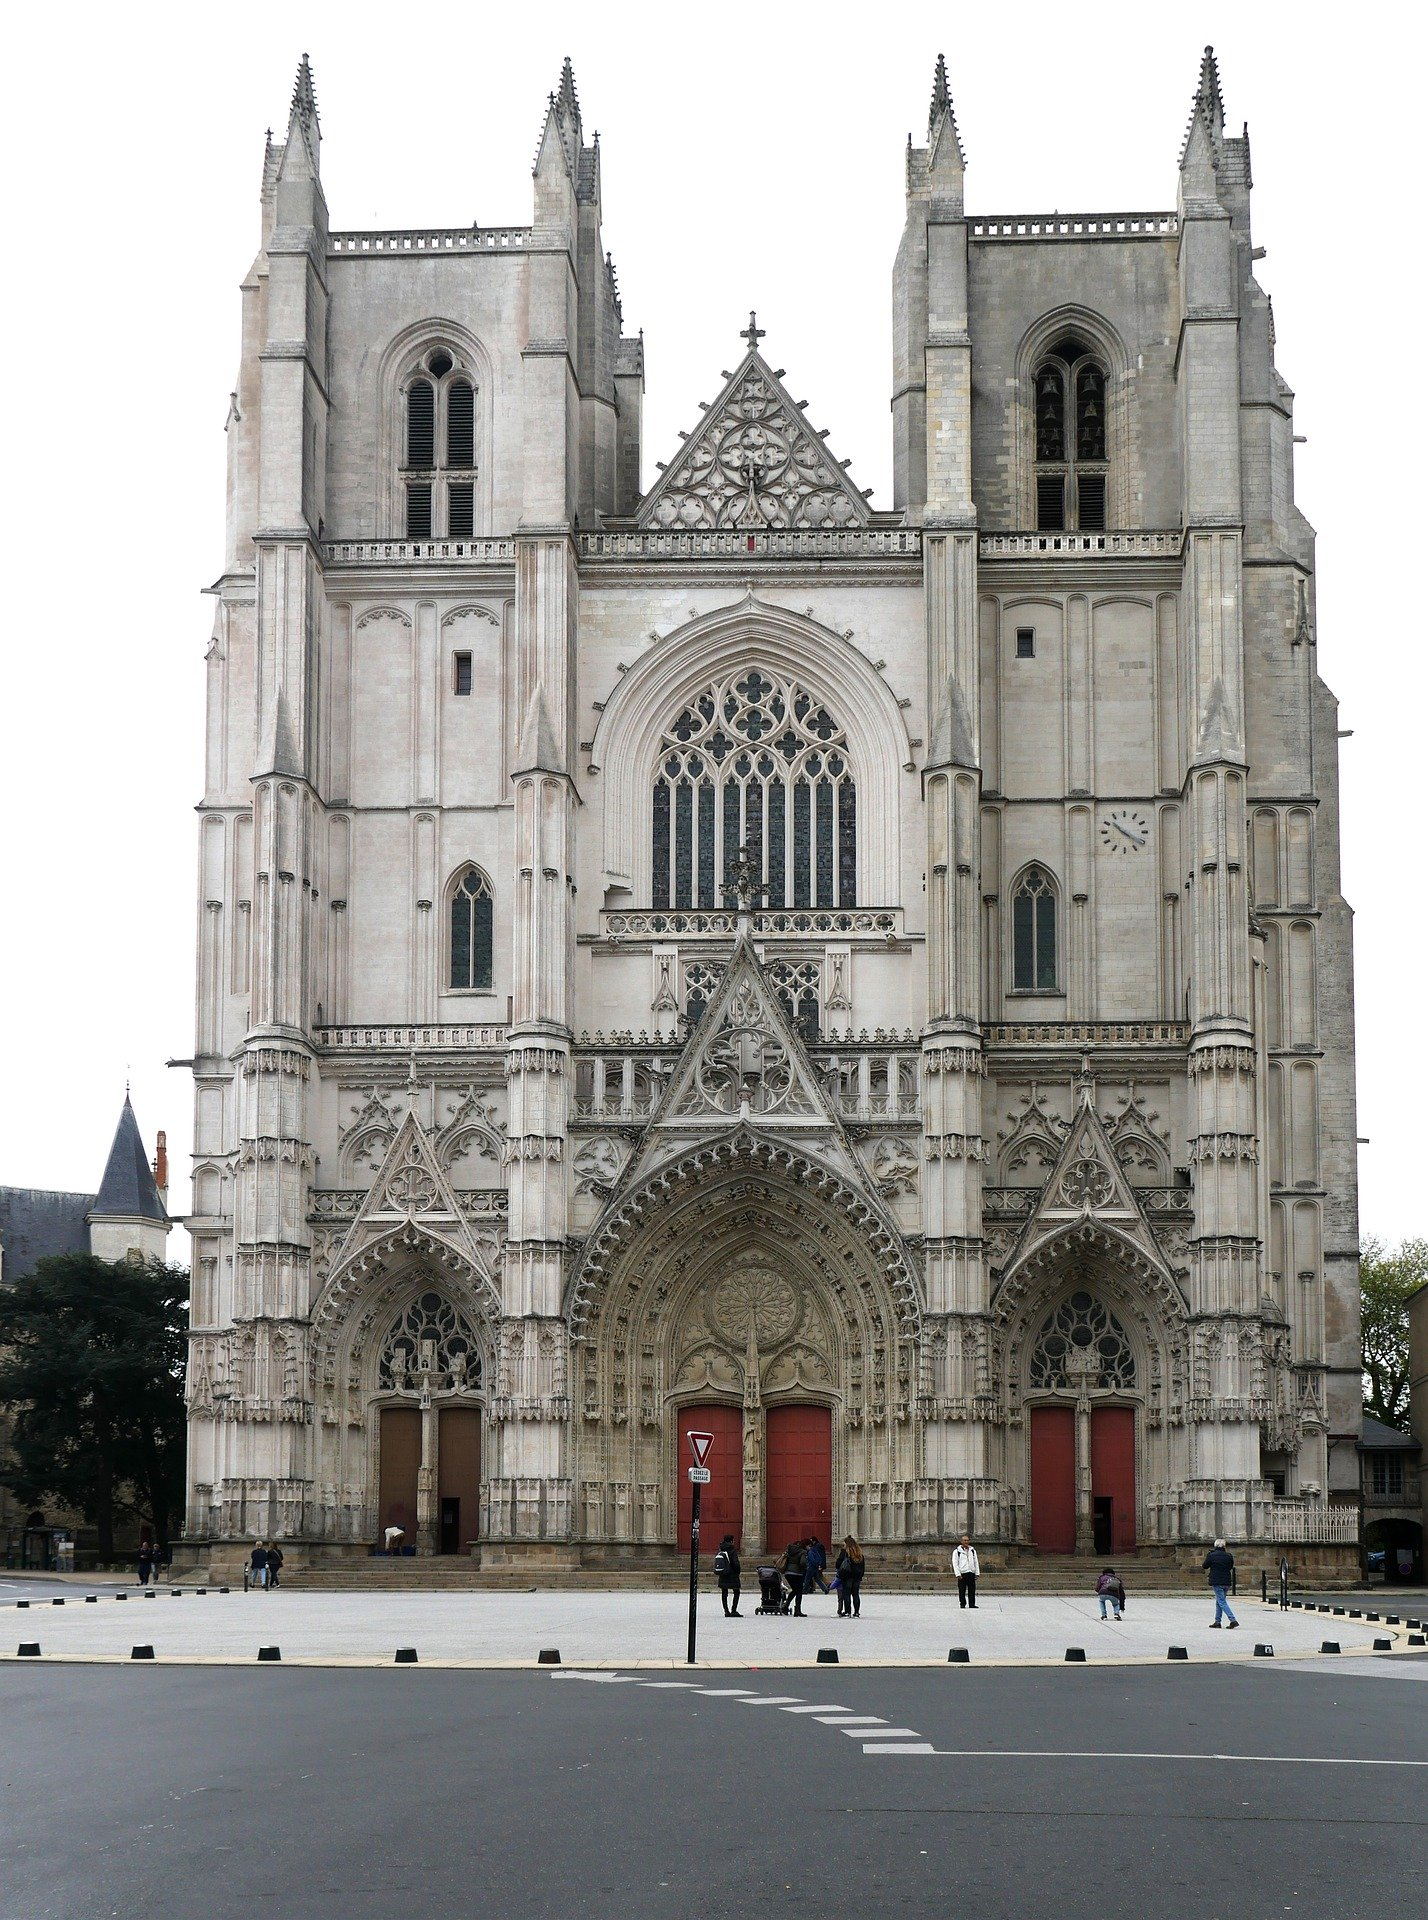 the-cathedral-of-nantes-4785006_1920